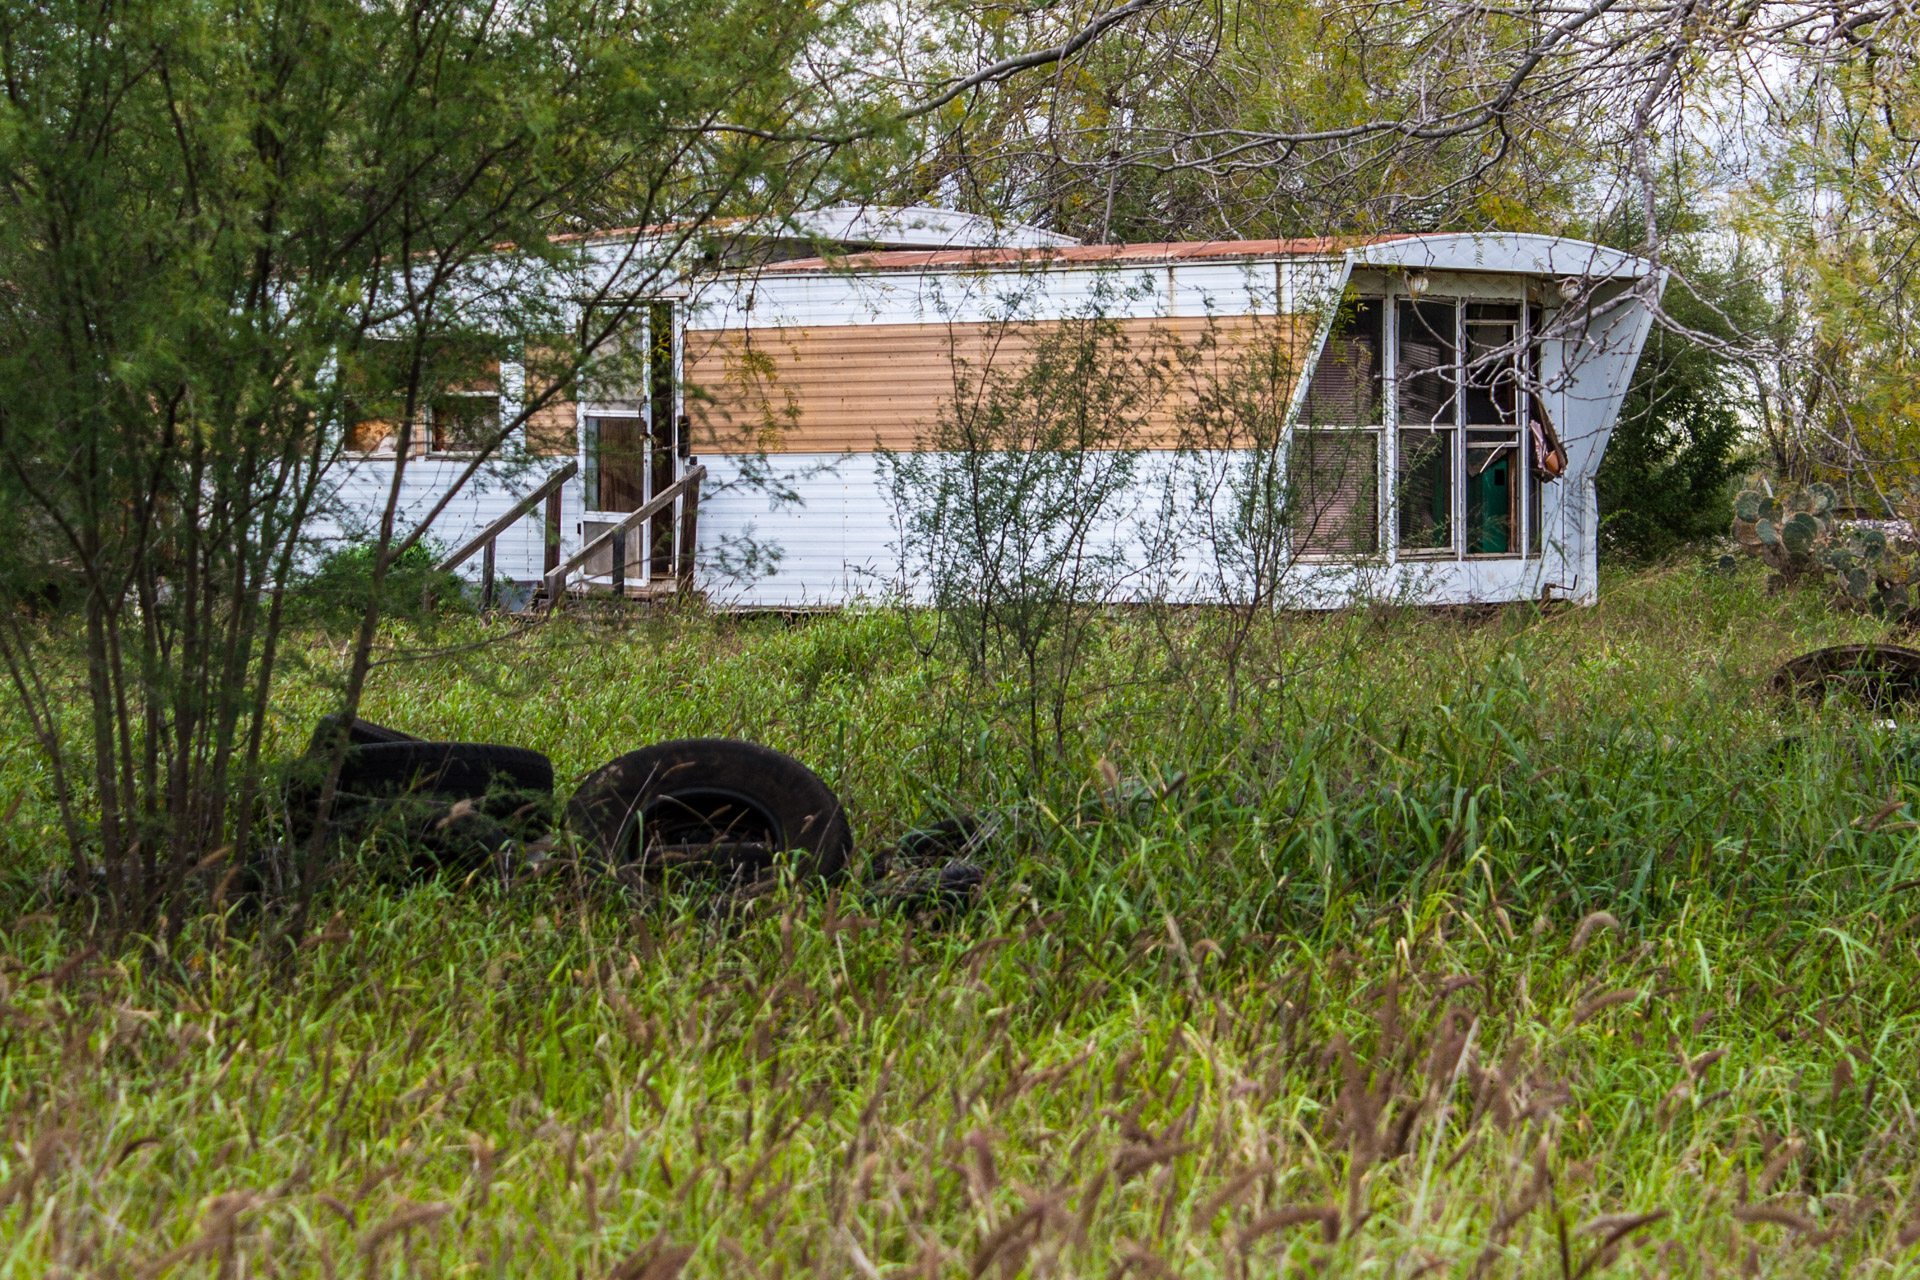 Pearsall, Texas - A Ruin, A Trailer, And Some Tires (trailer close)